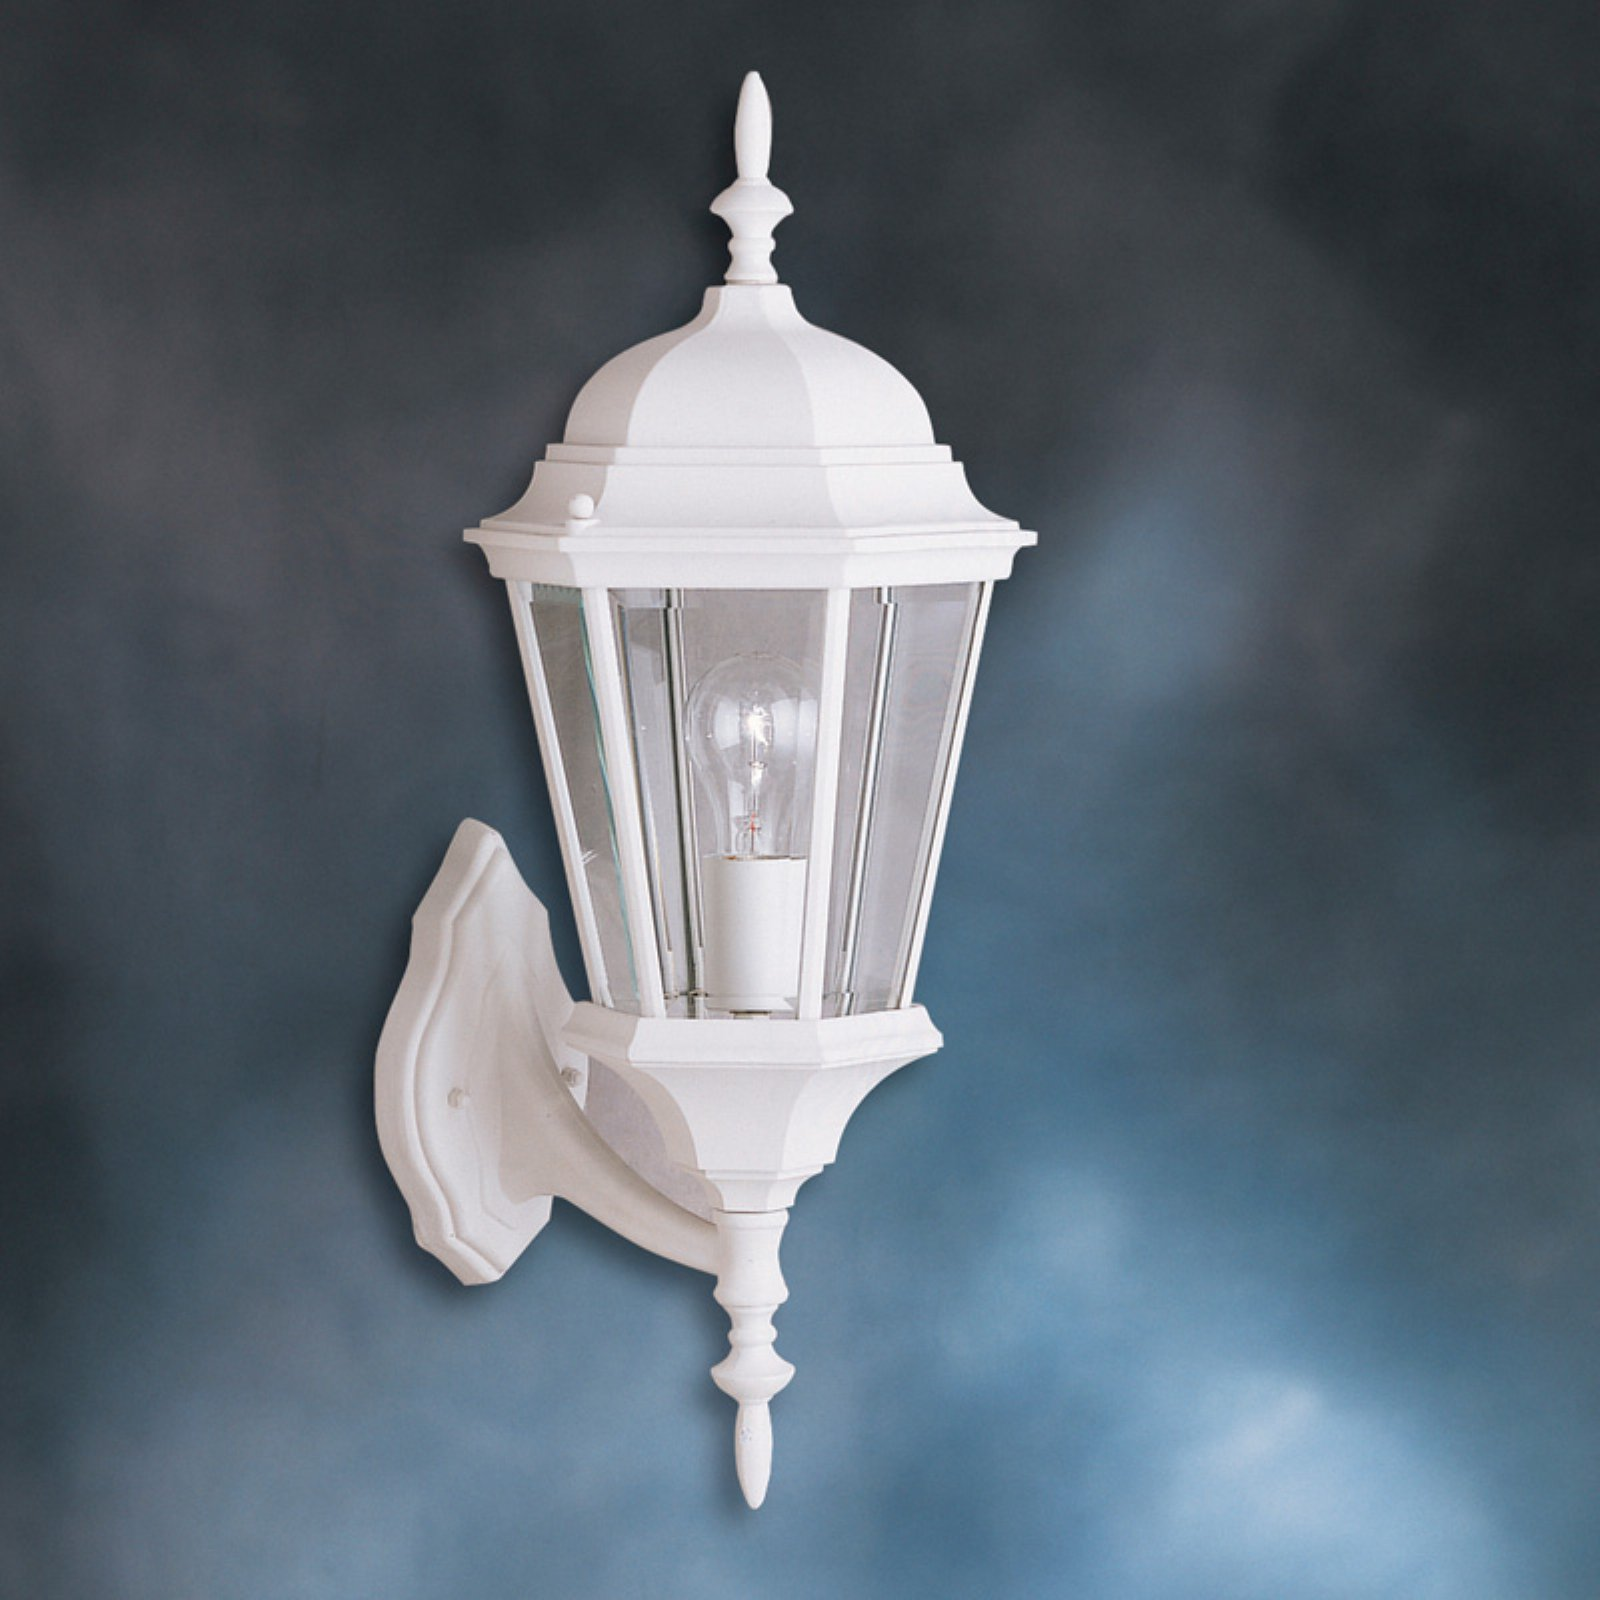 Kichler Madison 9654 Outdoor Wall Lantern - 9.5 in.